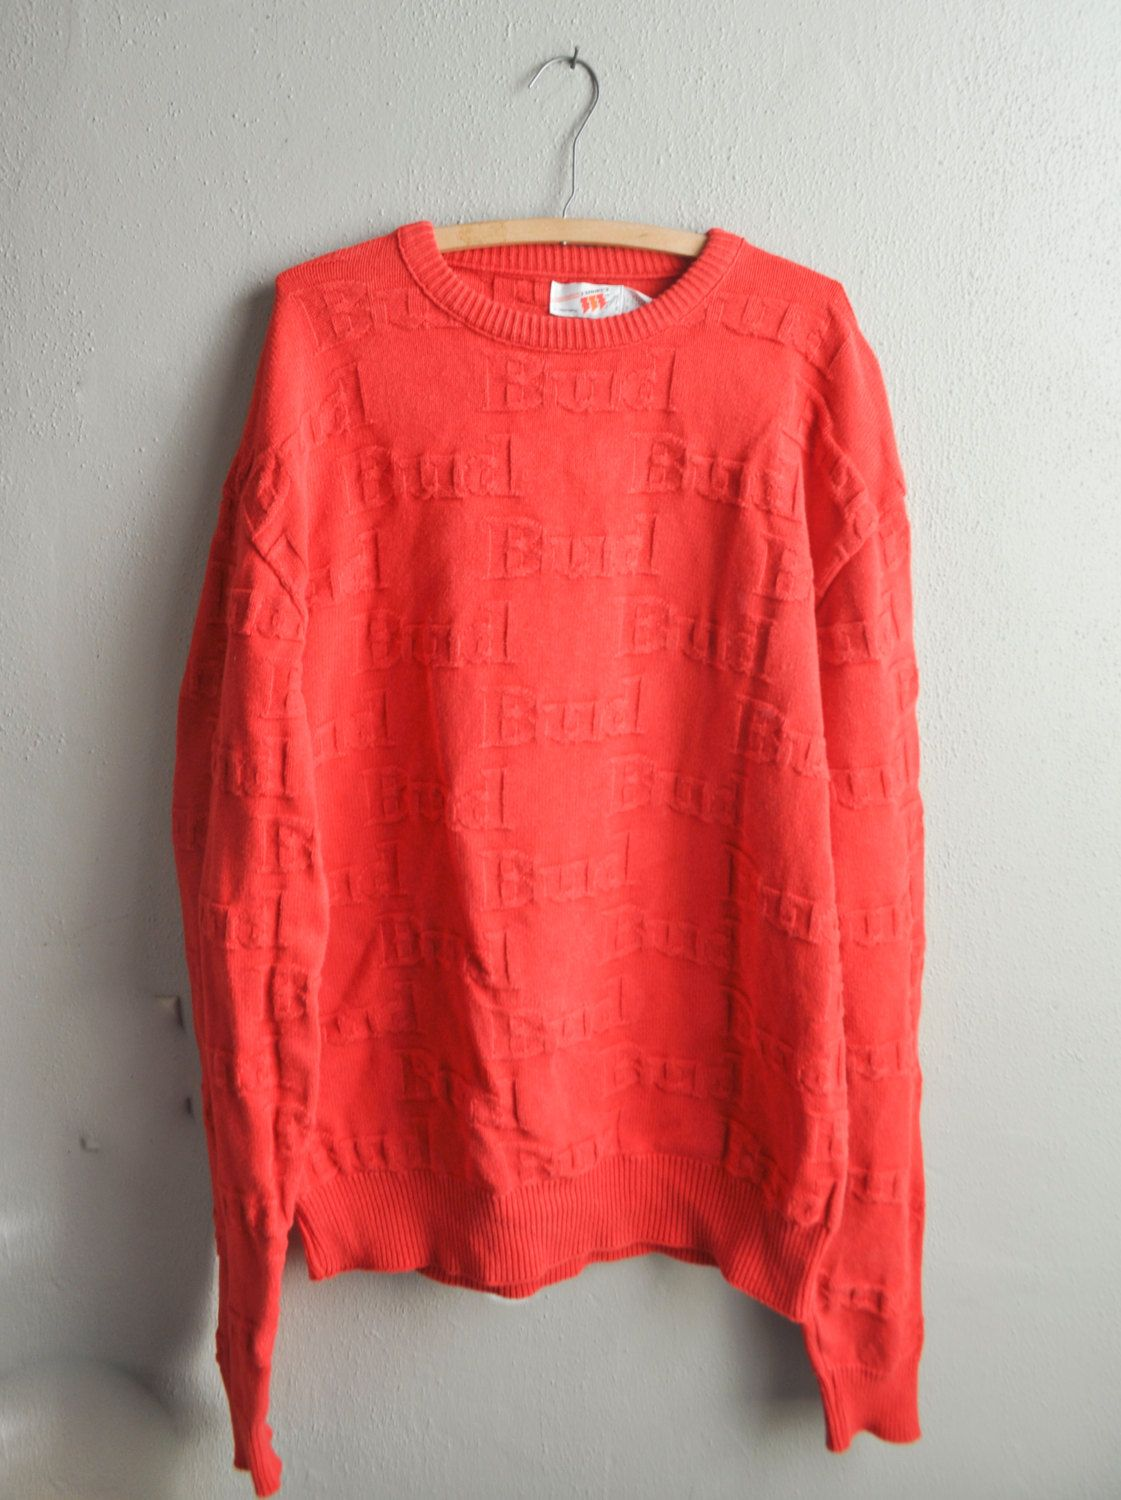 Vintage 80s Bud 3D Embossed Red Knit Sweater Bud Beer Promo ...